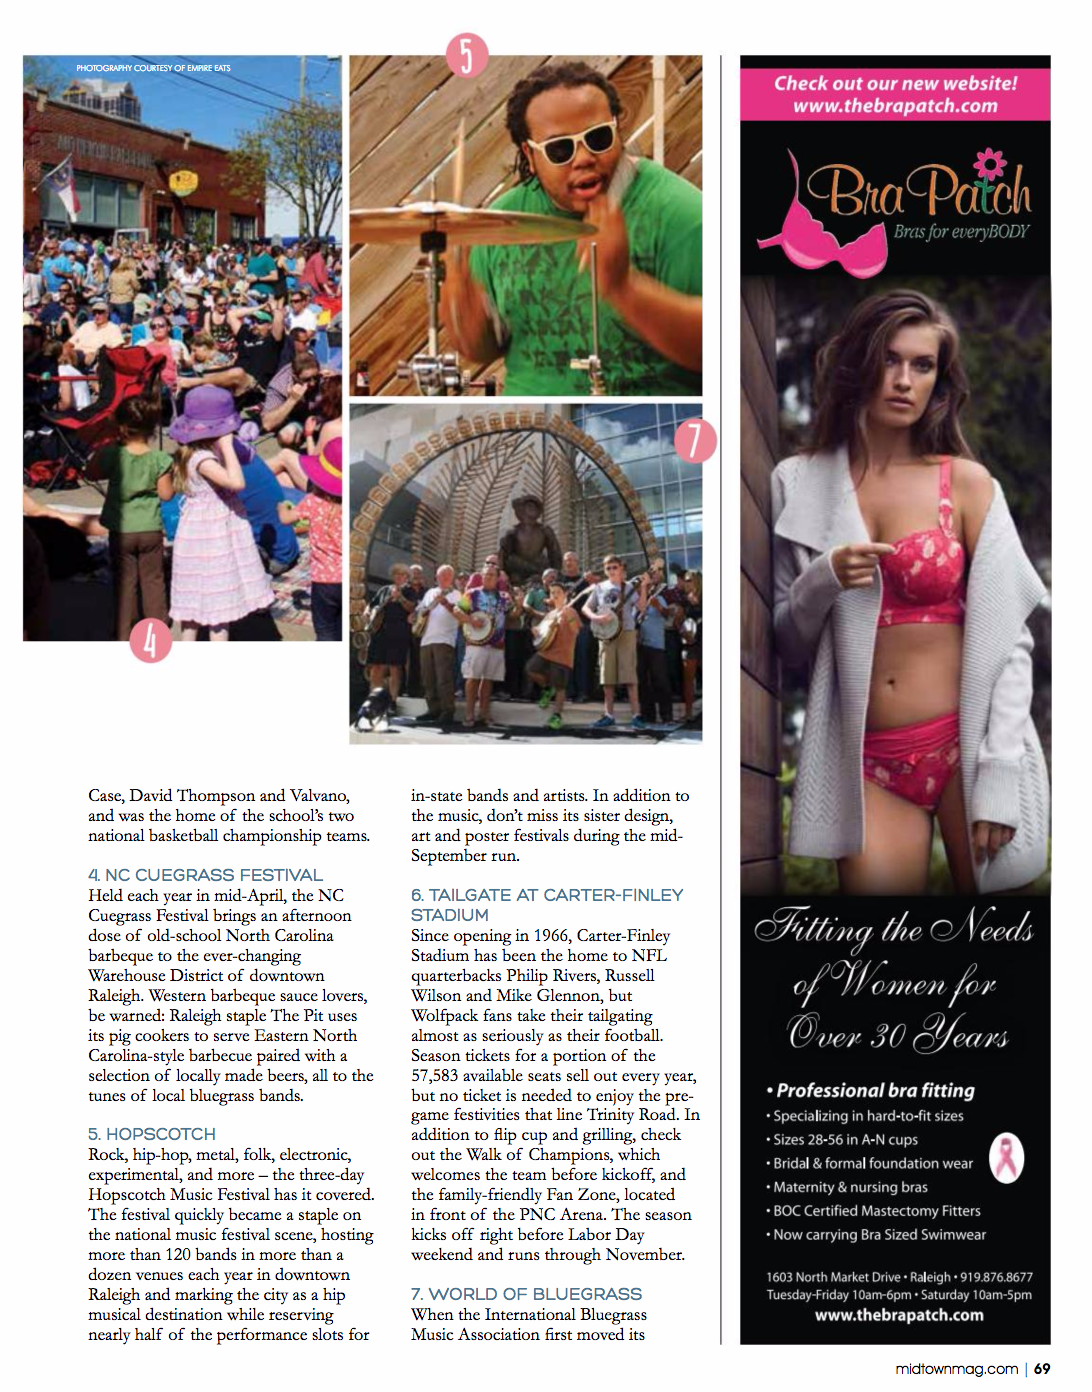 Bra Patch Featured in Midtown Magazine September/October 2016